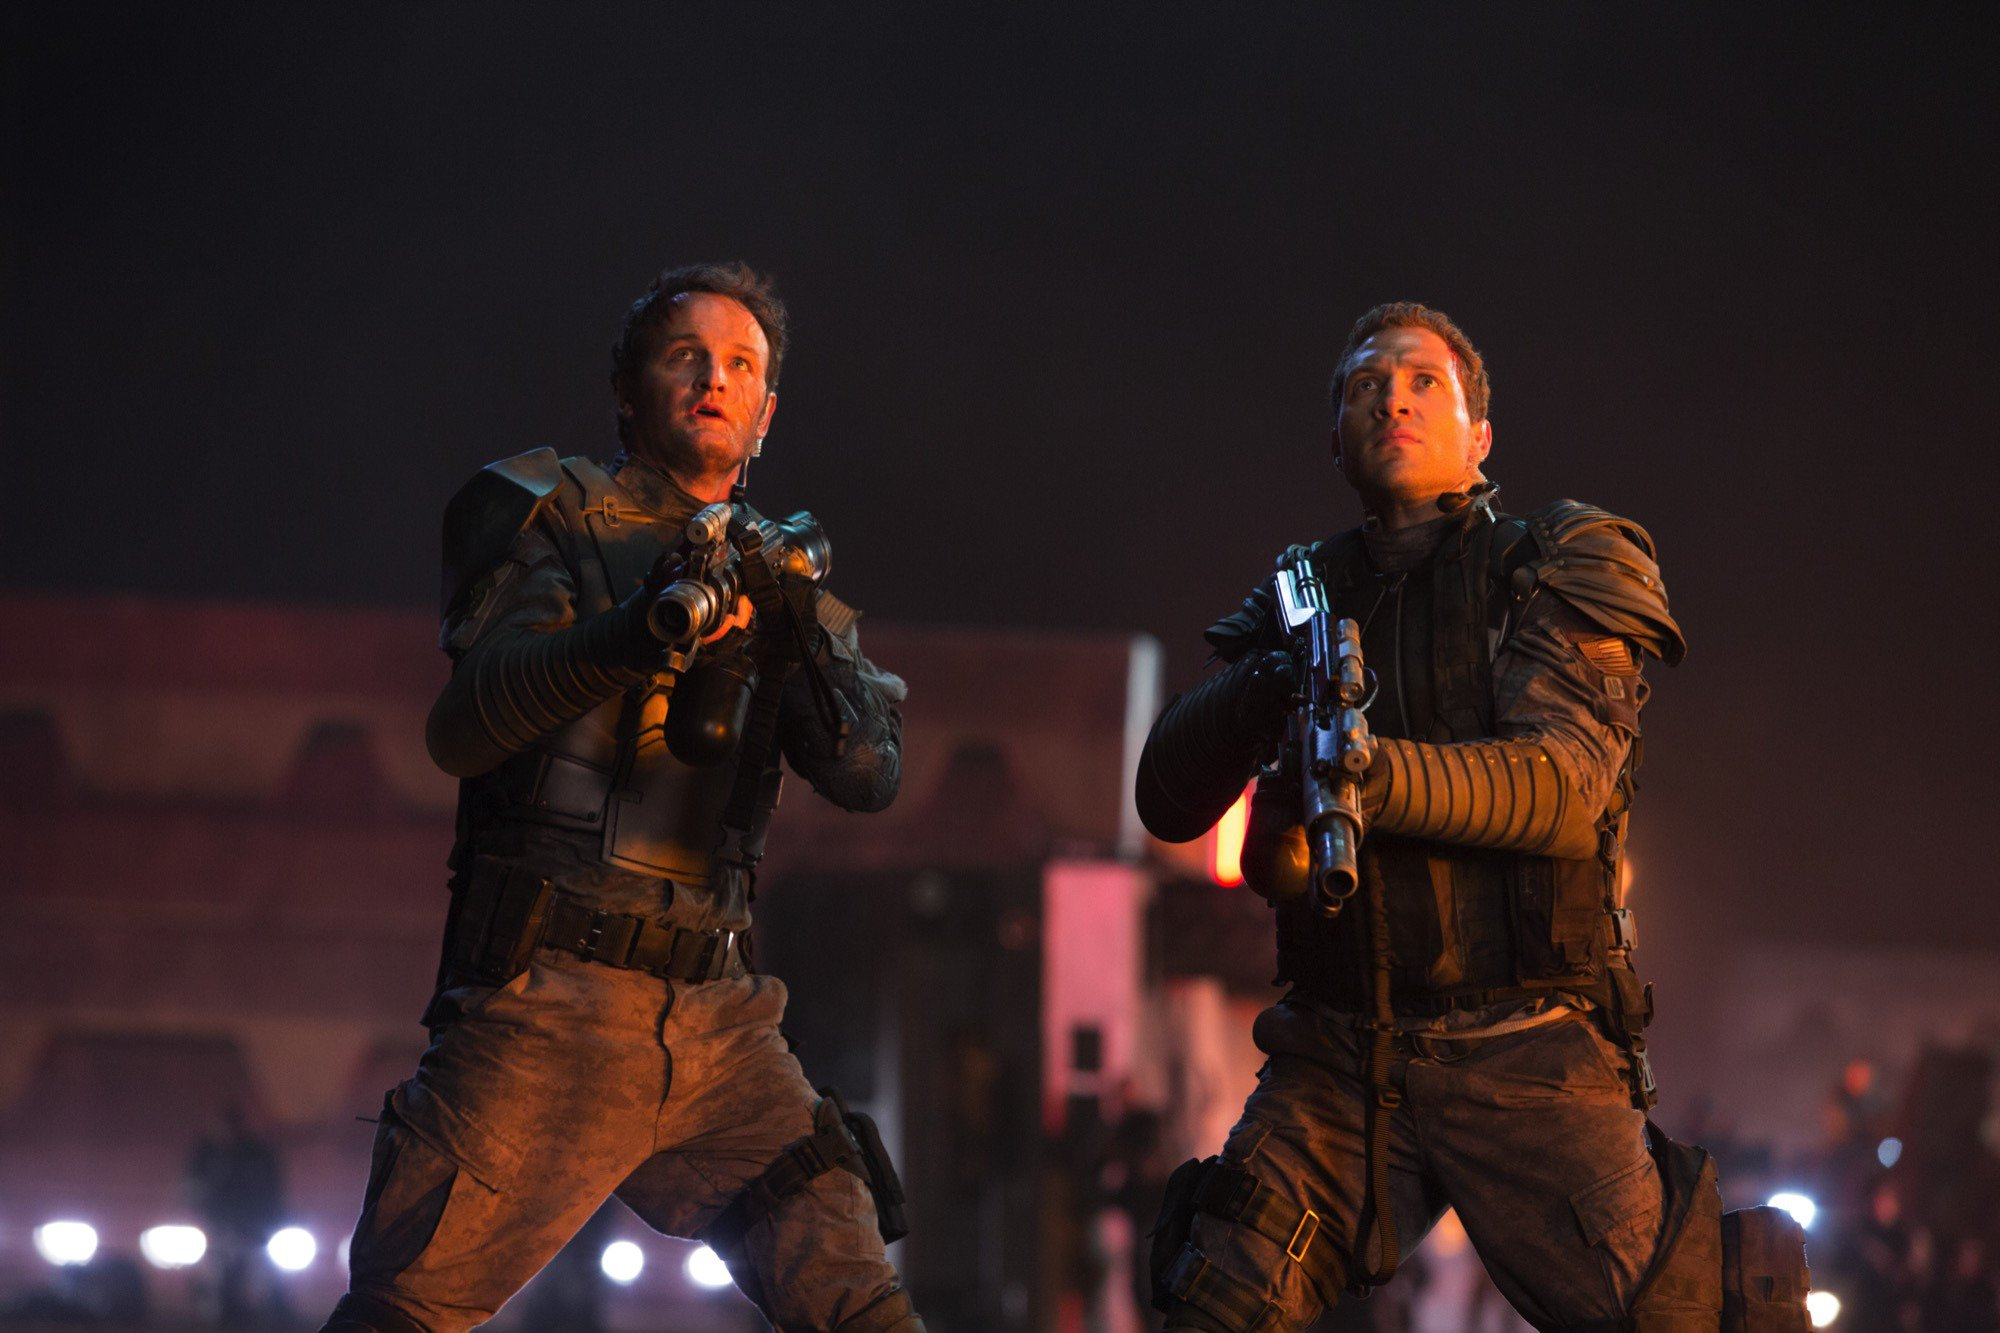 John Connor and Kyle Reese Terminator Genisys - HeadStuff.org